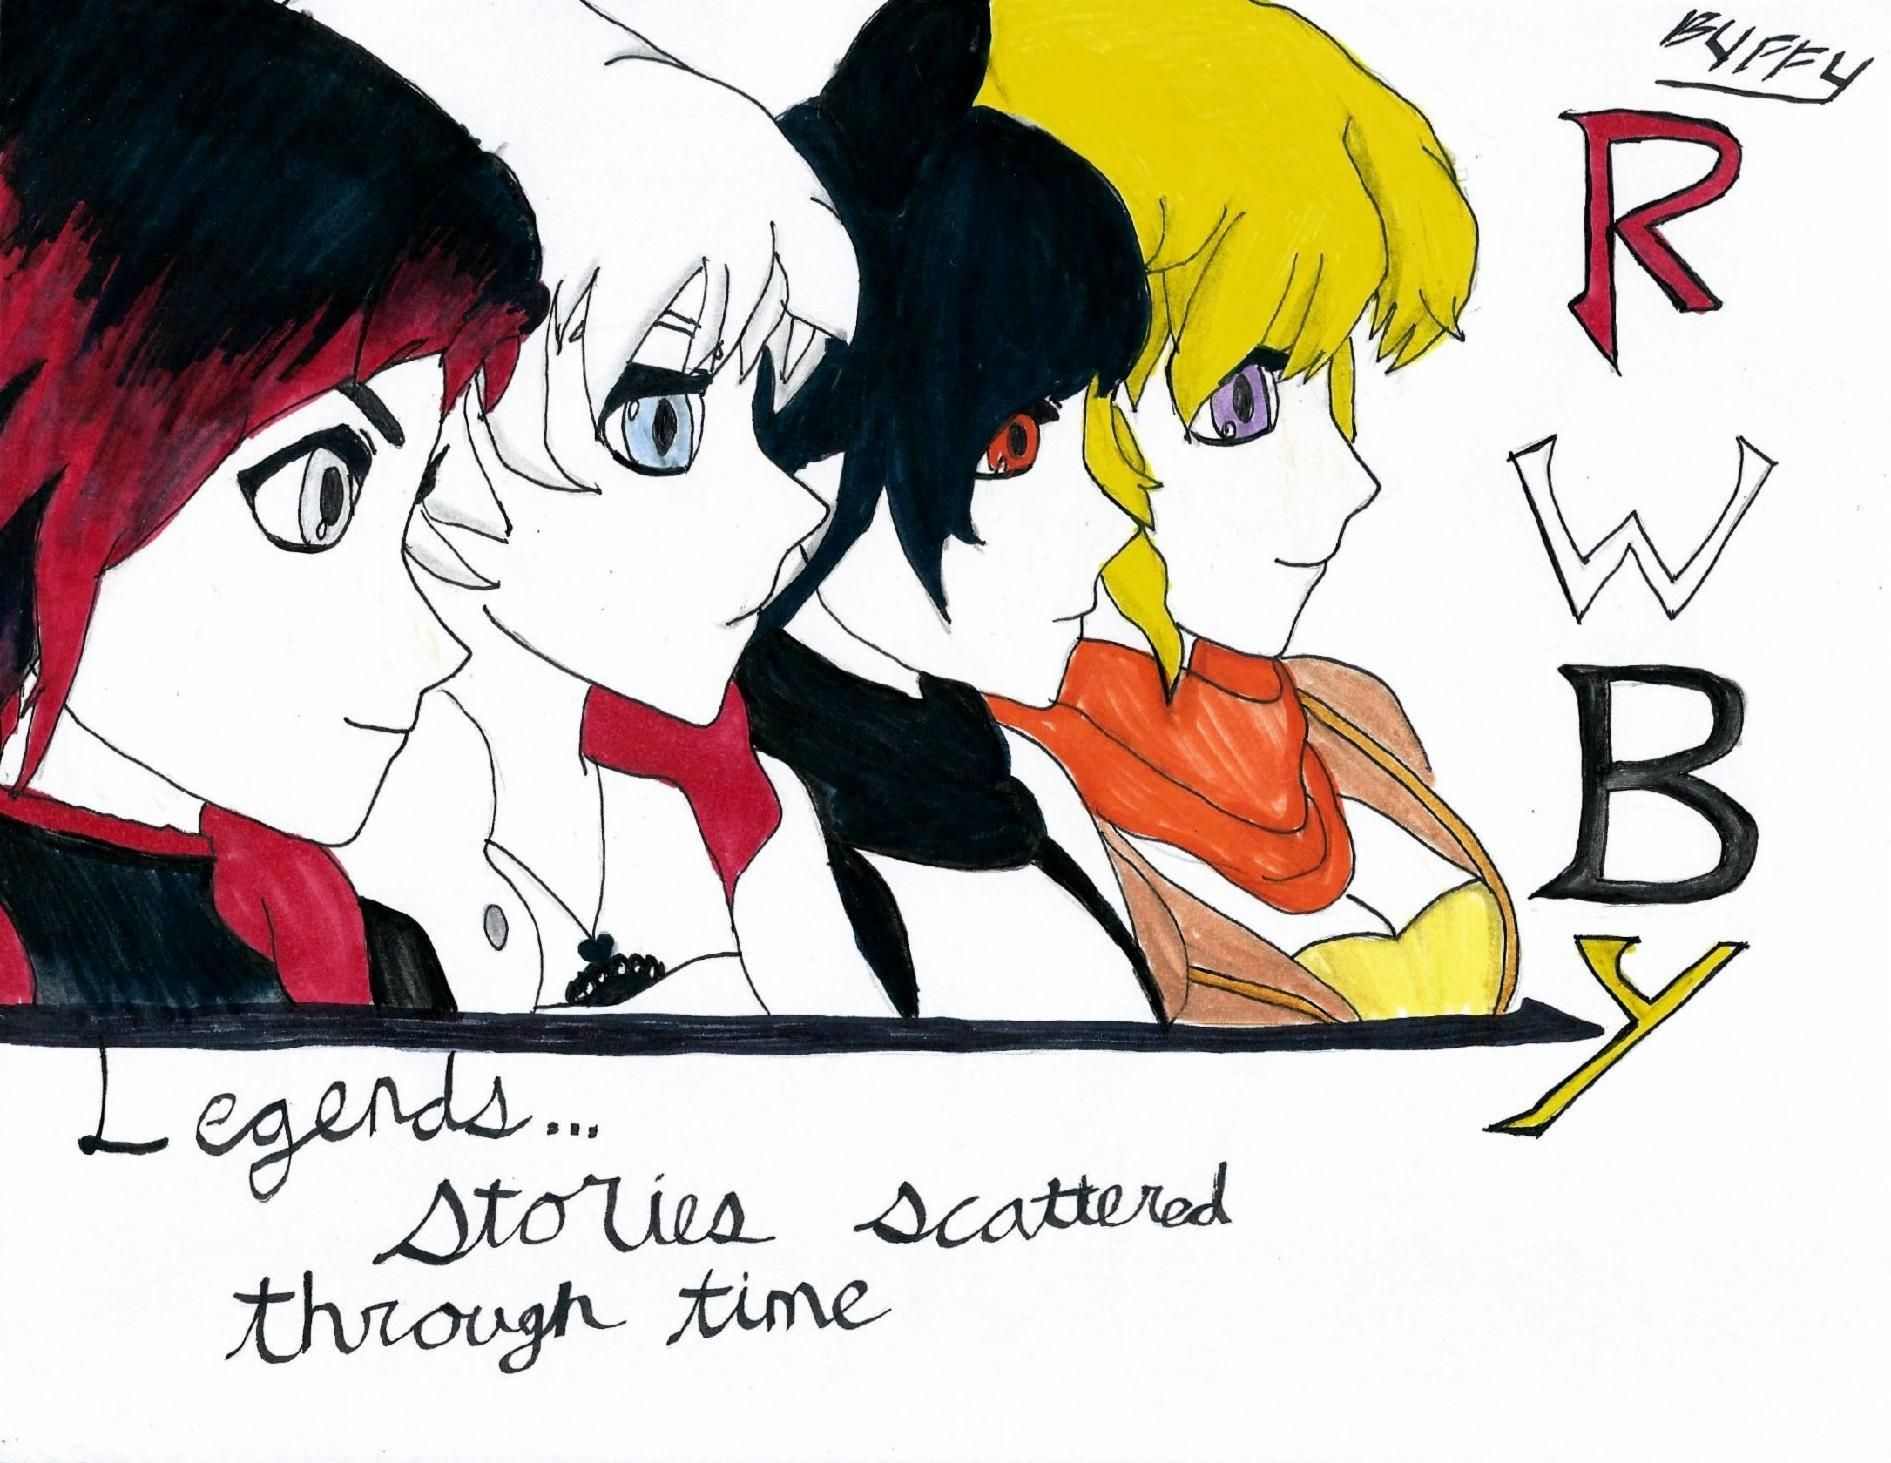 What Character from team RWBY are you?